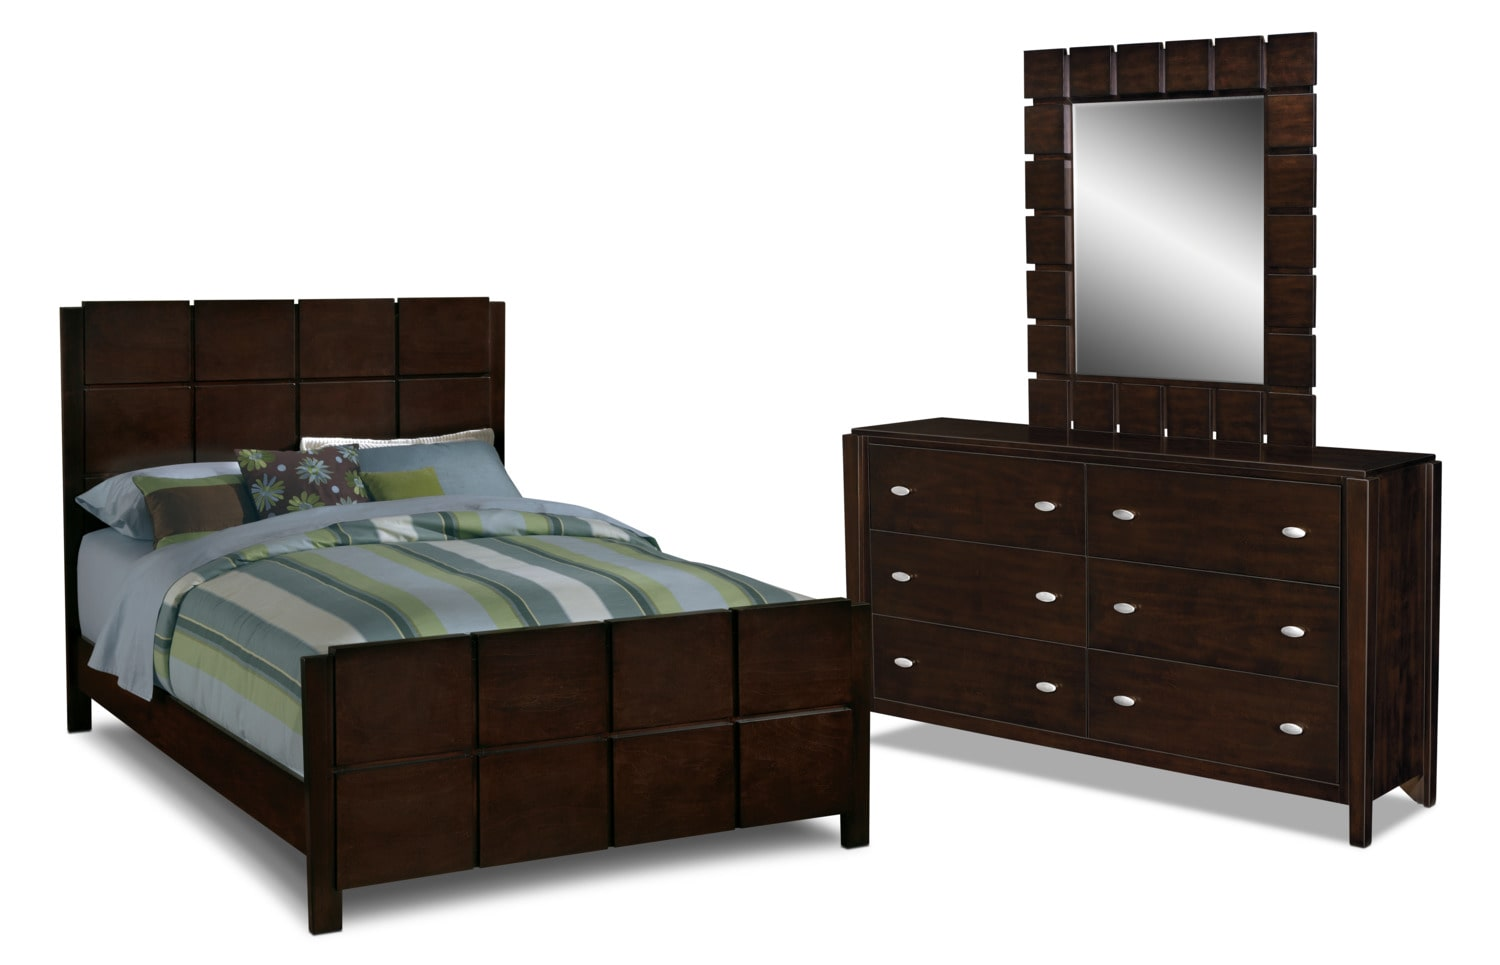 Mosaic 5 Piece Queen Bedroom Set Dark Brown By Factory Outlet Bedroom Furniture Mosaic 5 Piece Queen Bedroom Set Dark Brown